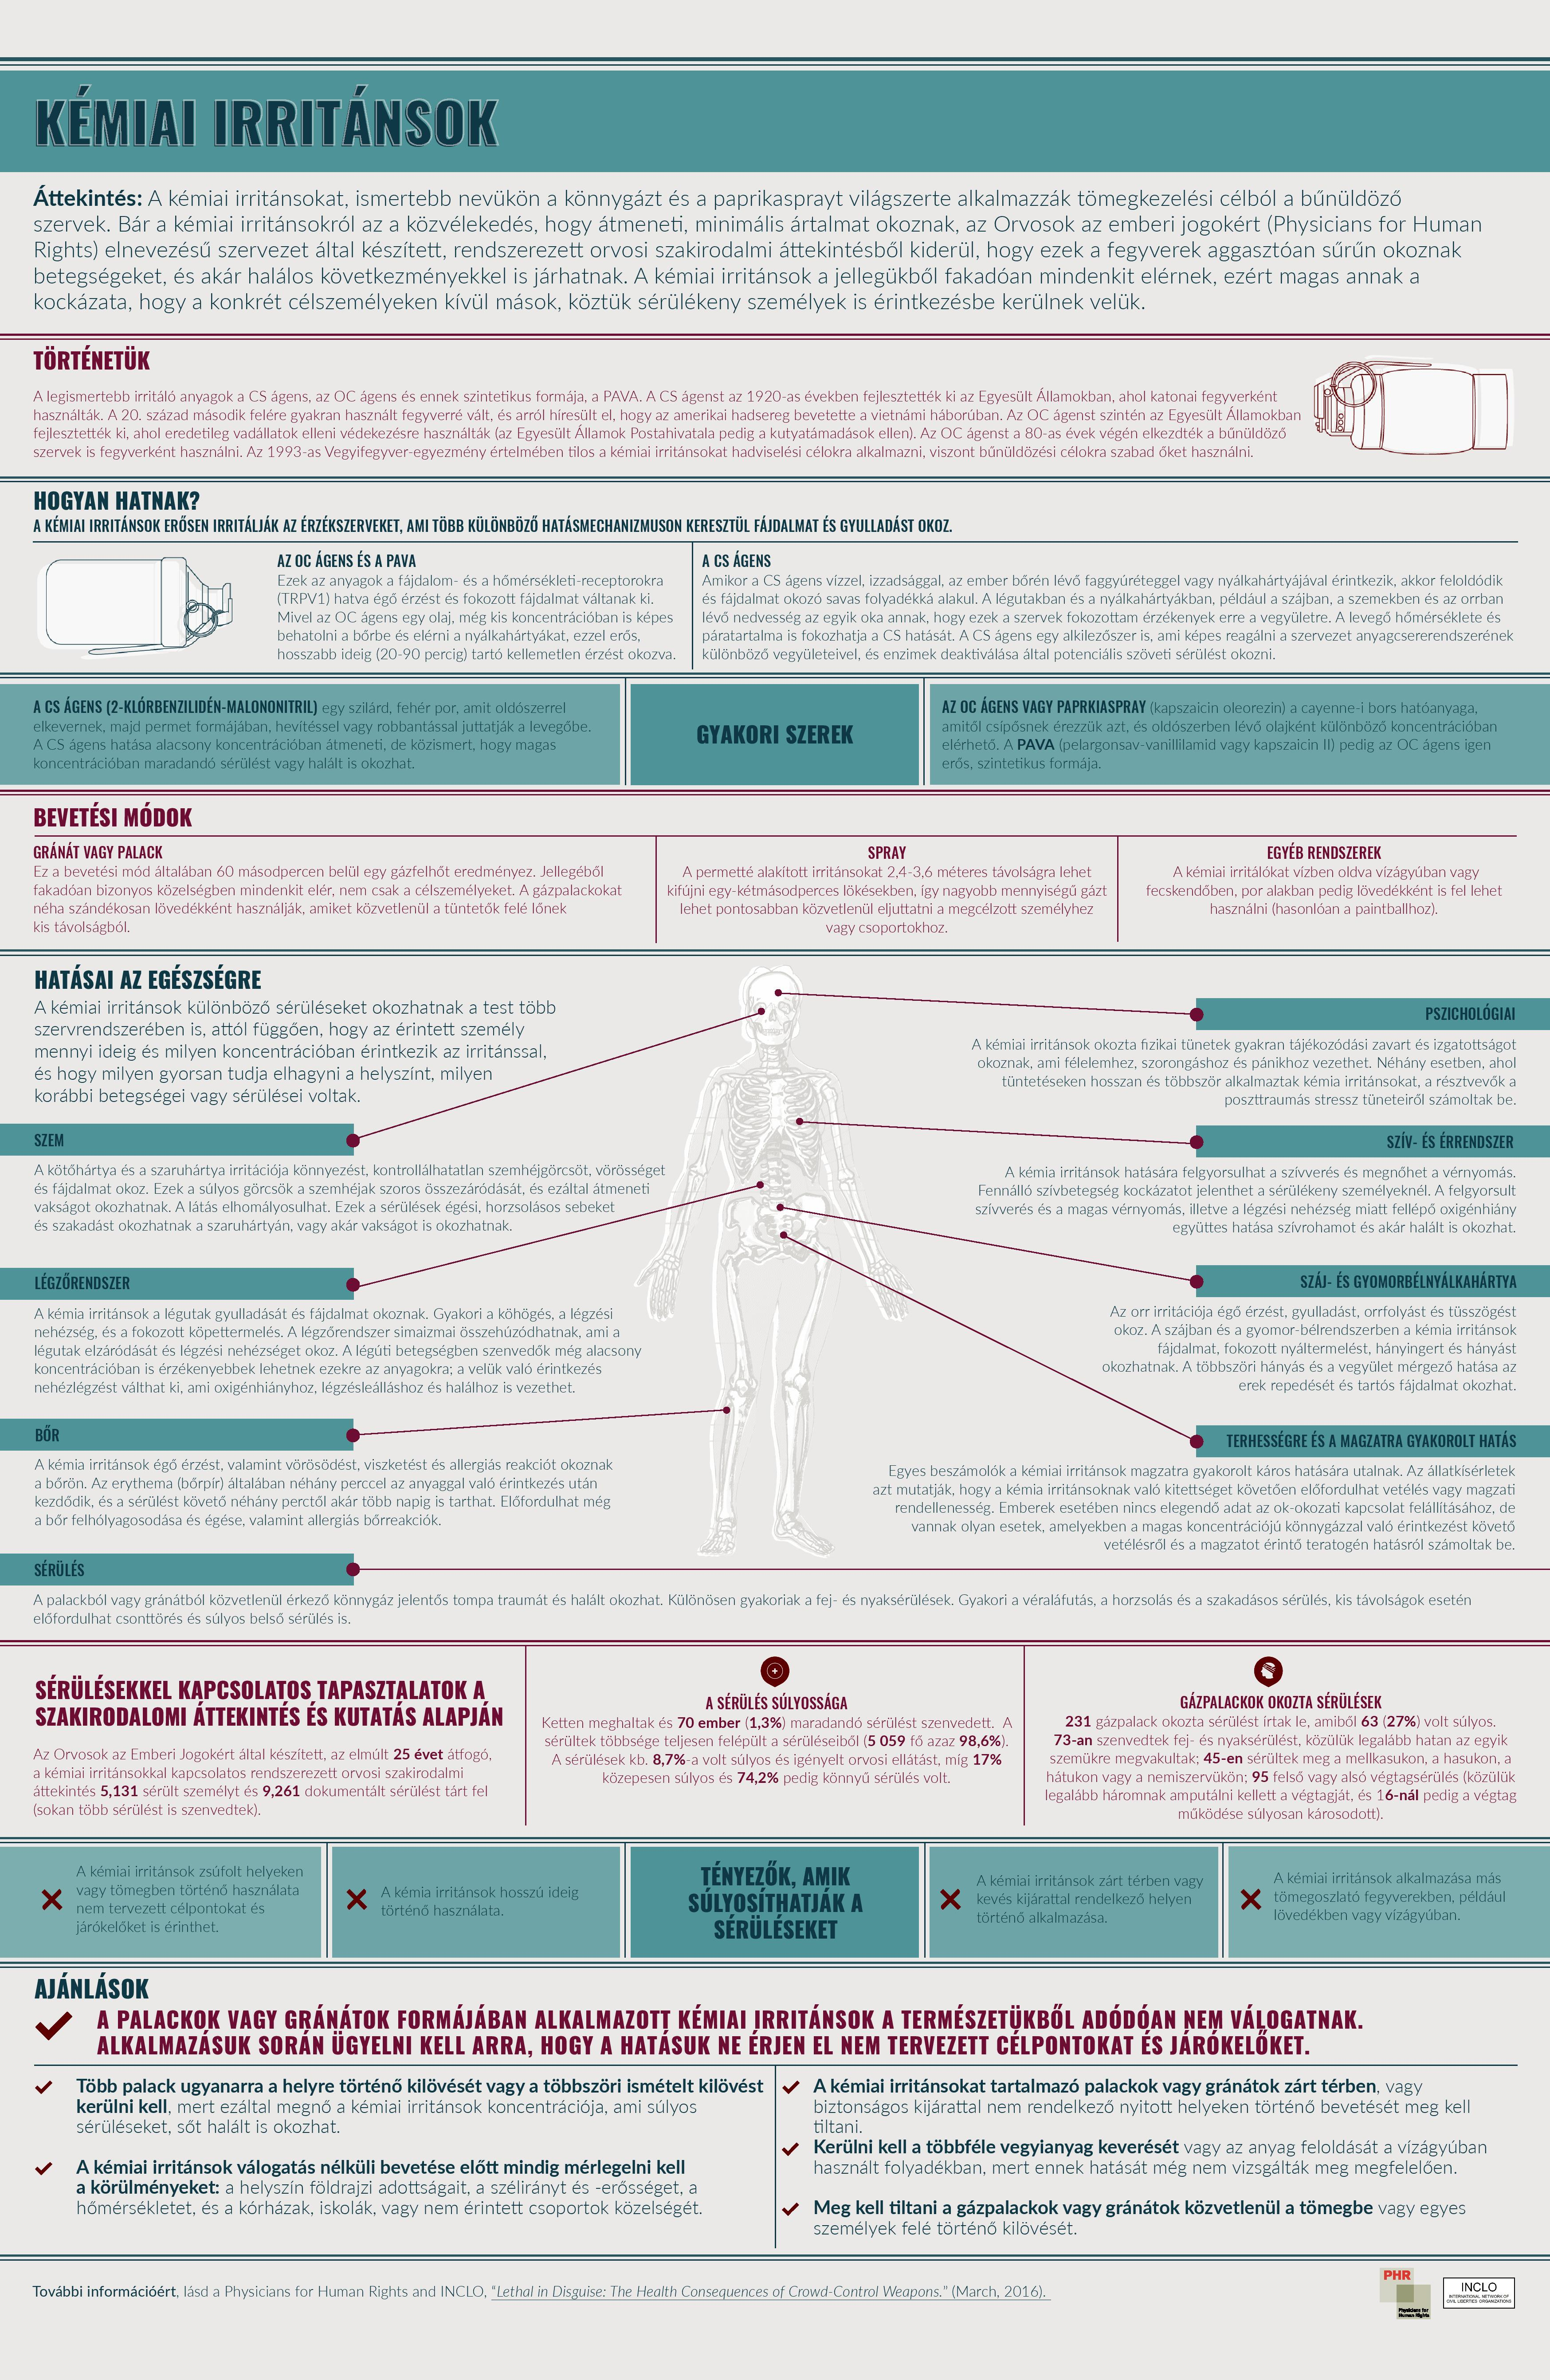 factsheets_poster_hungarian_chemical_irritants_web_2_1_-page-001.jpg